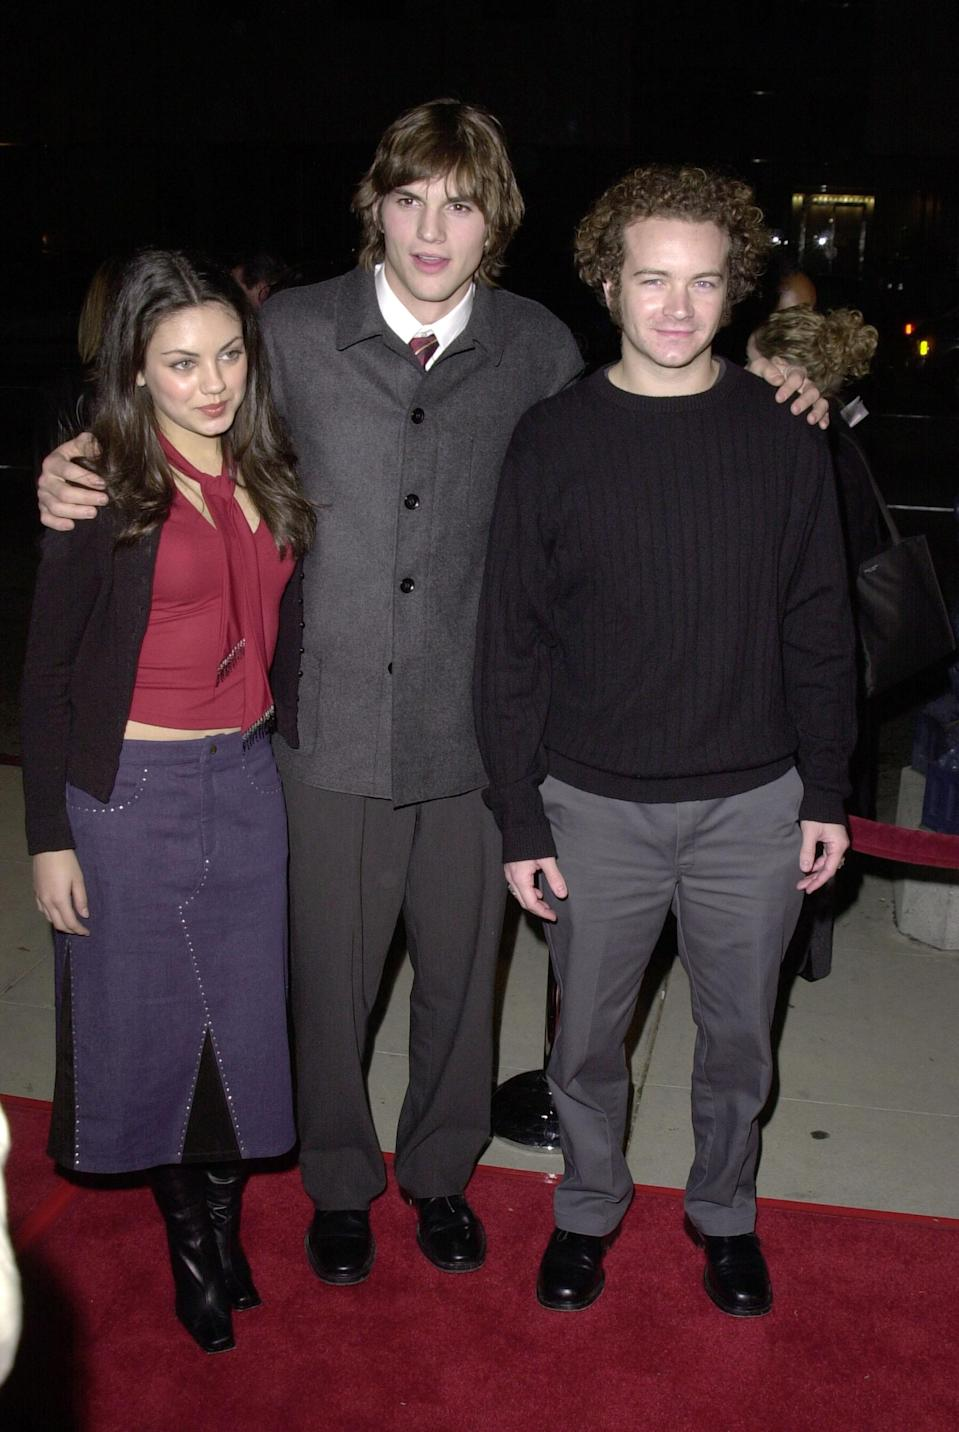 Mila Kunis, Ashton Kutcher, and Danny Masterson attend an event together in 2000. (Photo: SGranitz/WireImage)